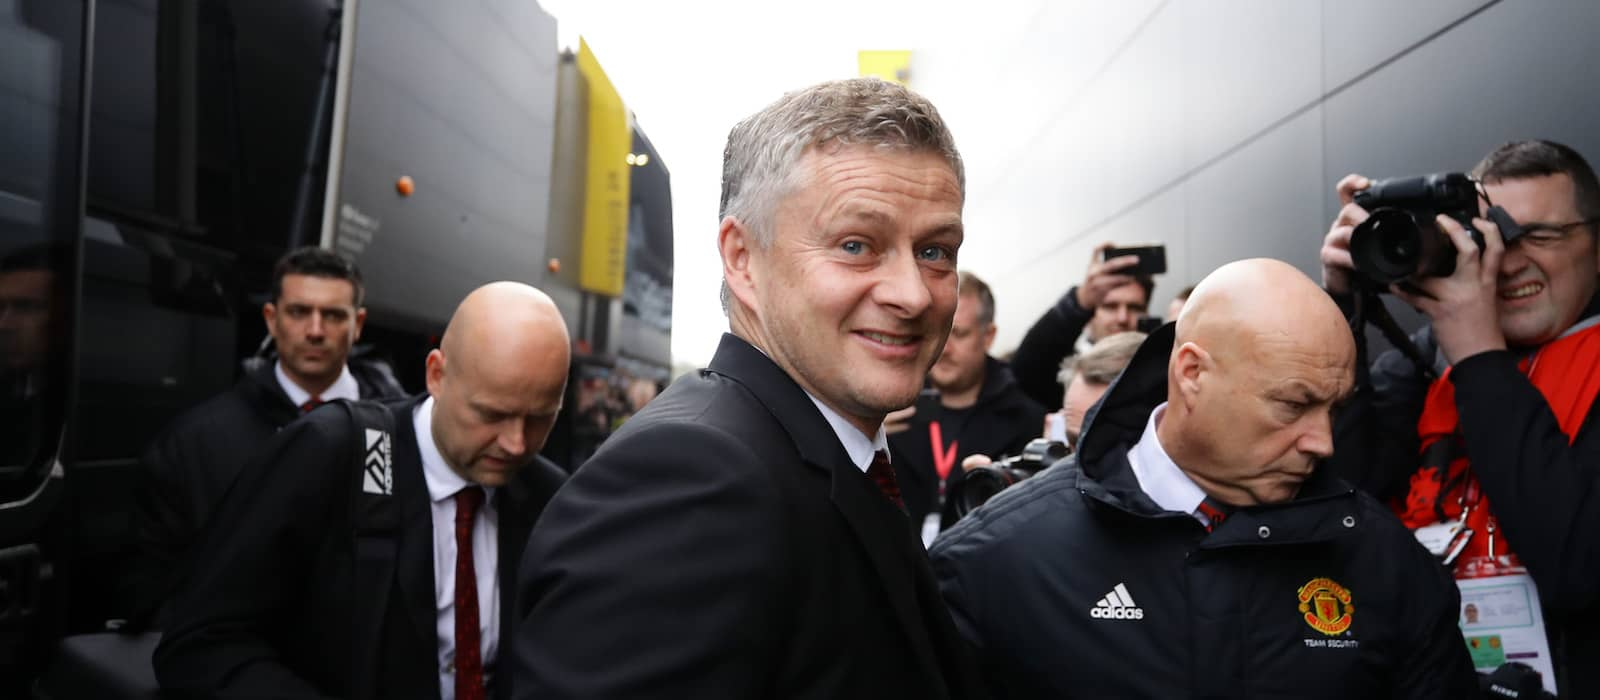 Ole Gunnar Solskjaer relying heavily on penalties to win